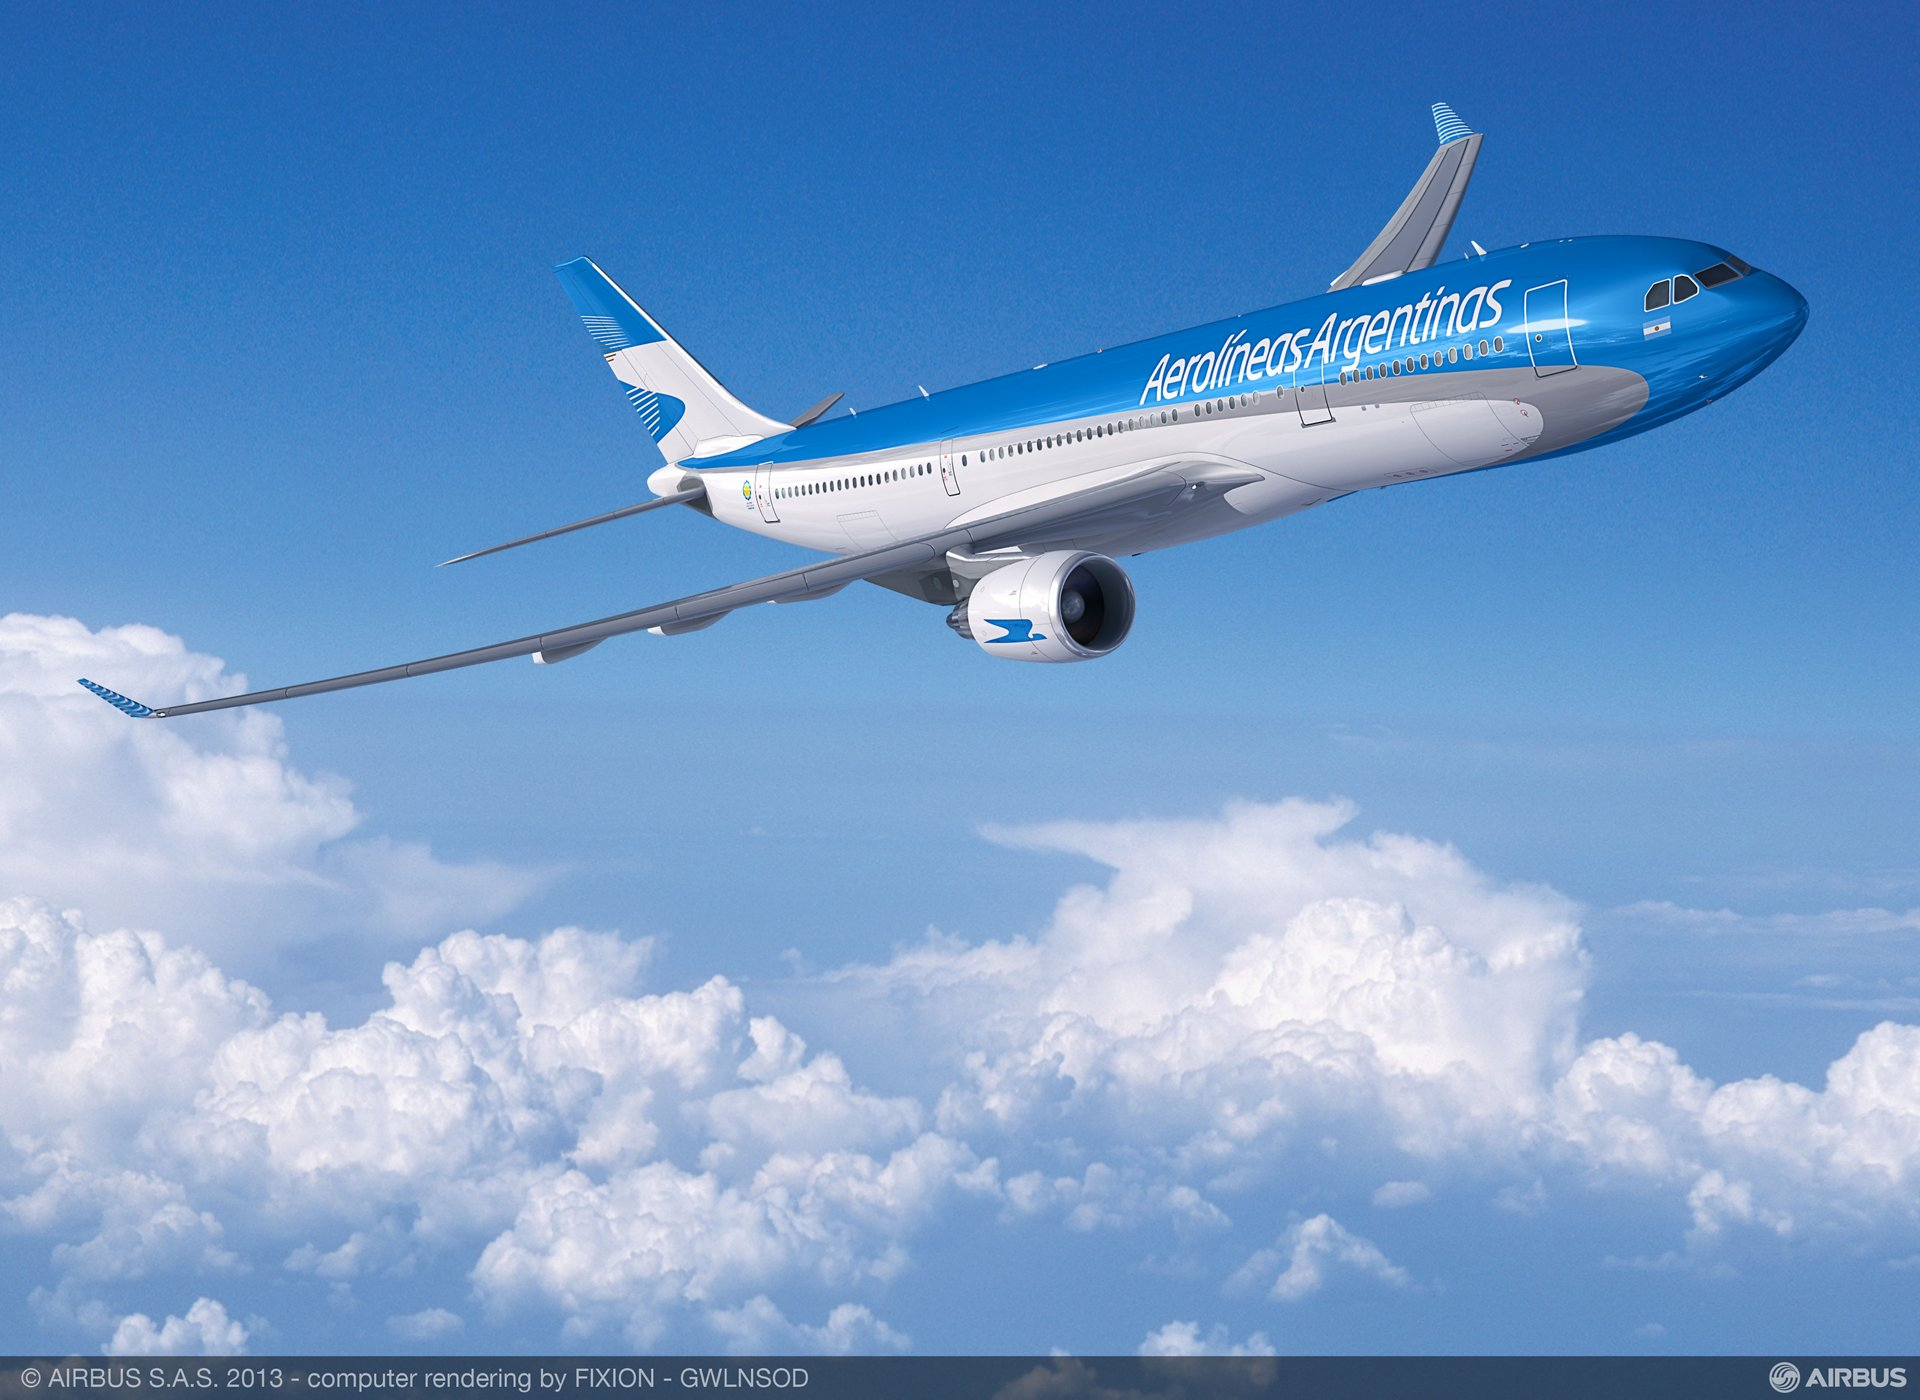 Aerolineas Argentinas has signed a purchase agreement for four Airbus A330-200s to renew and consolidate their widebody fleet.